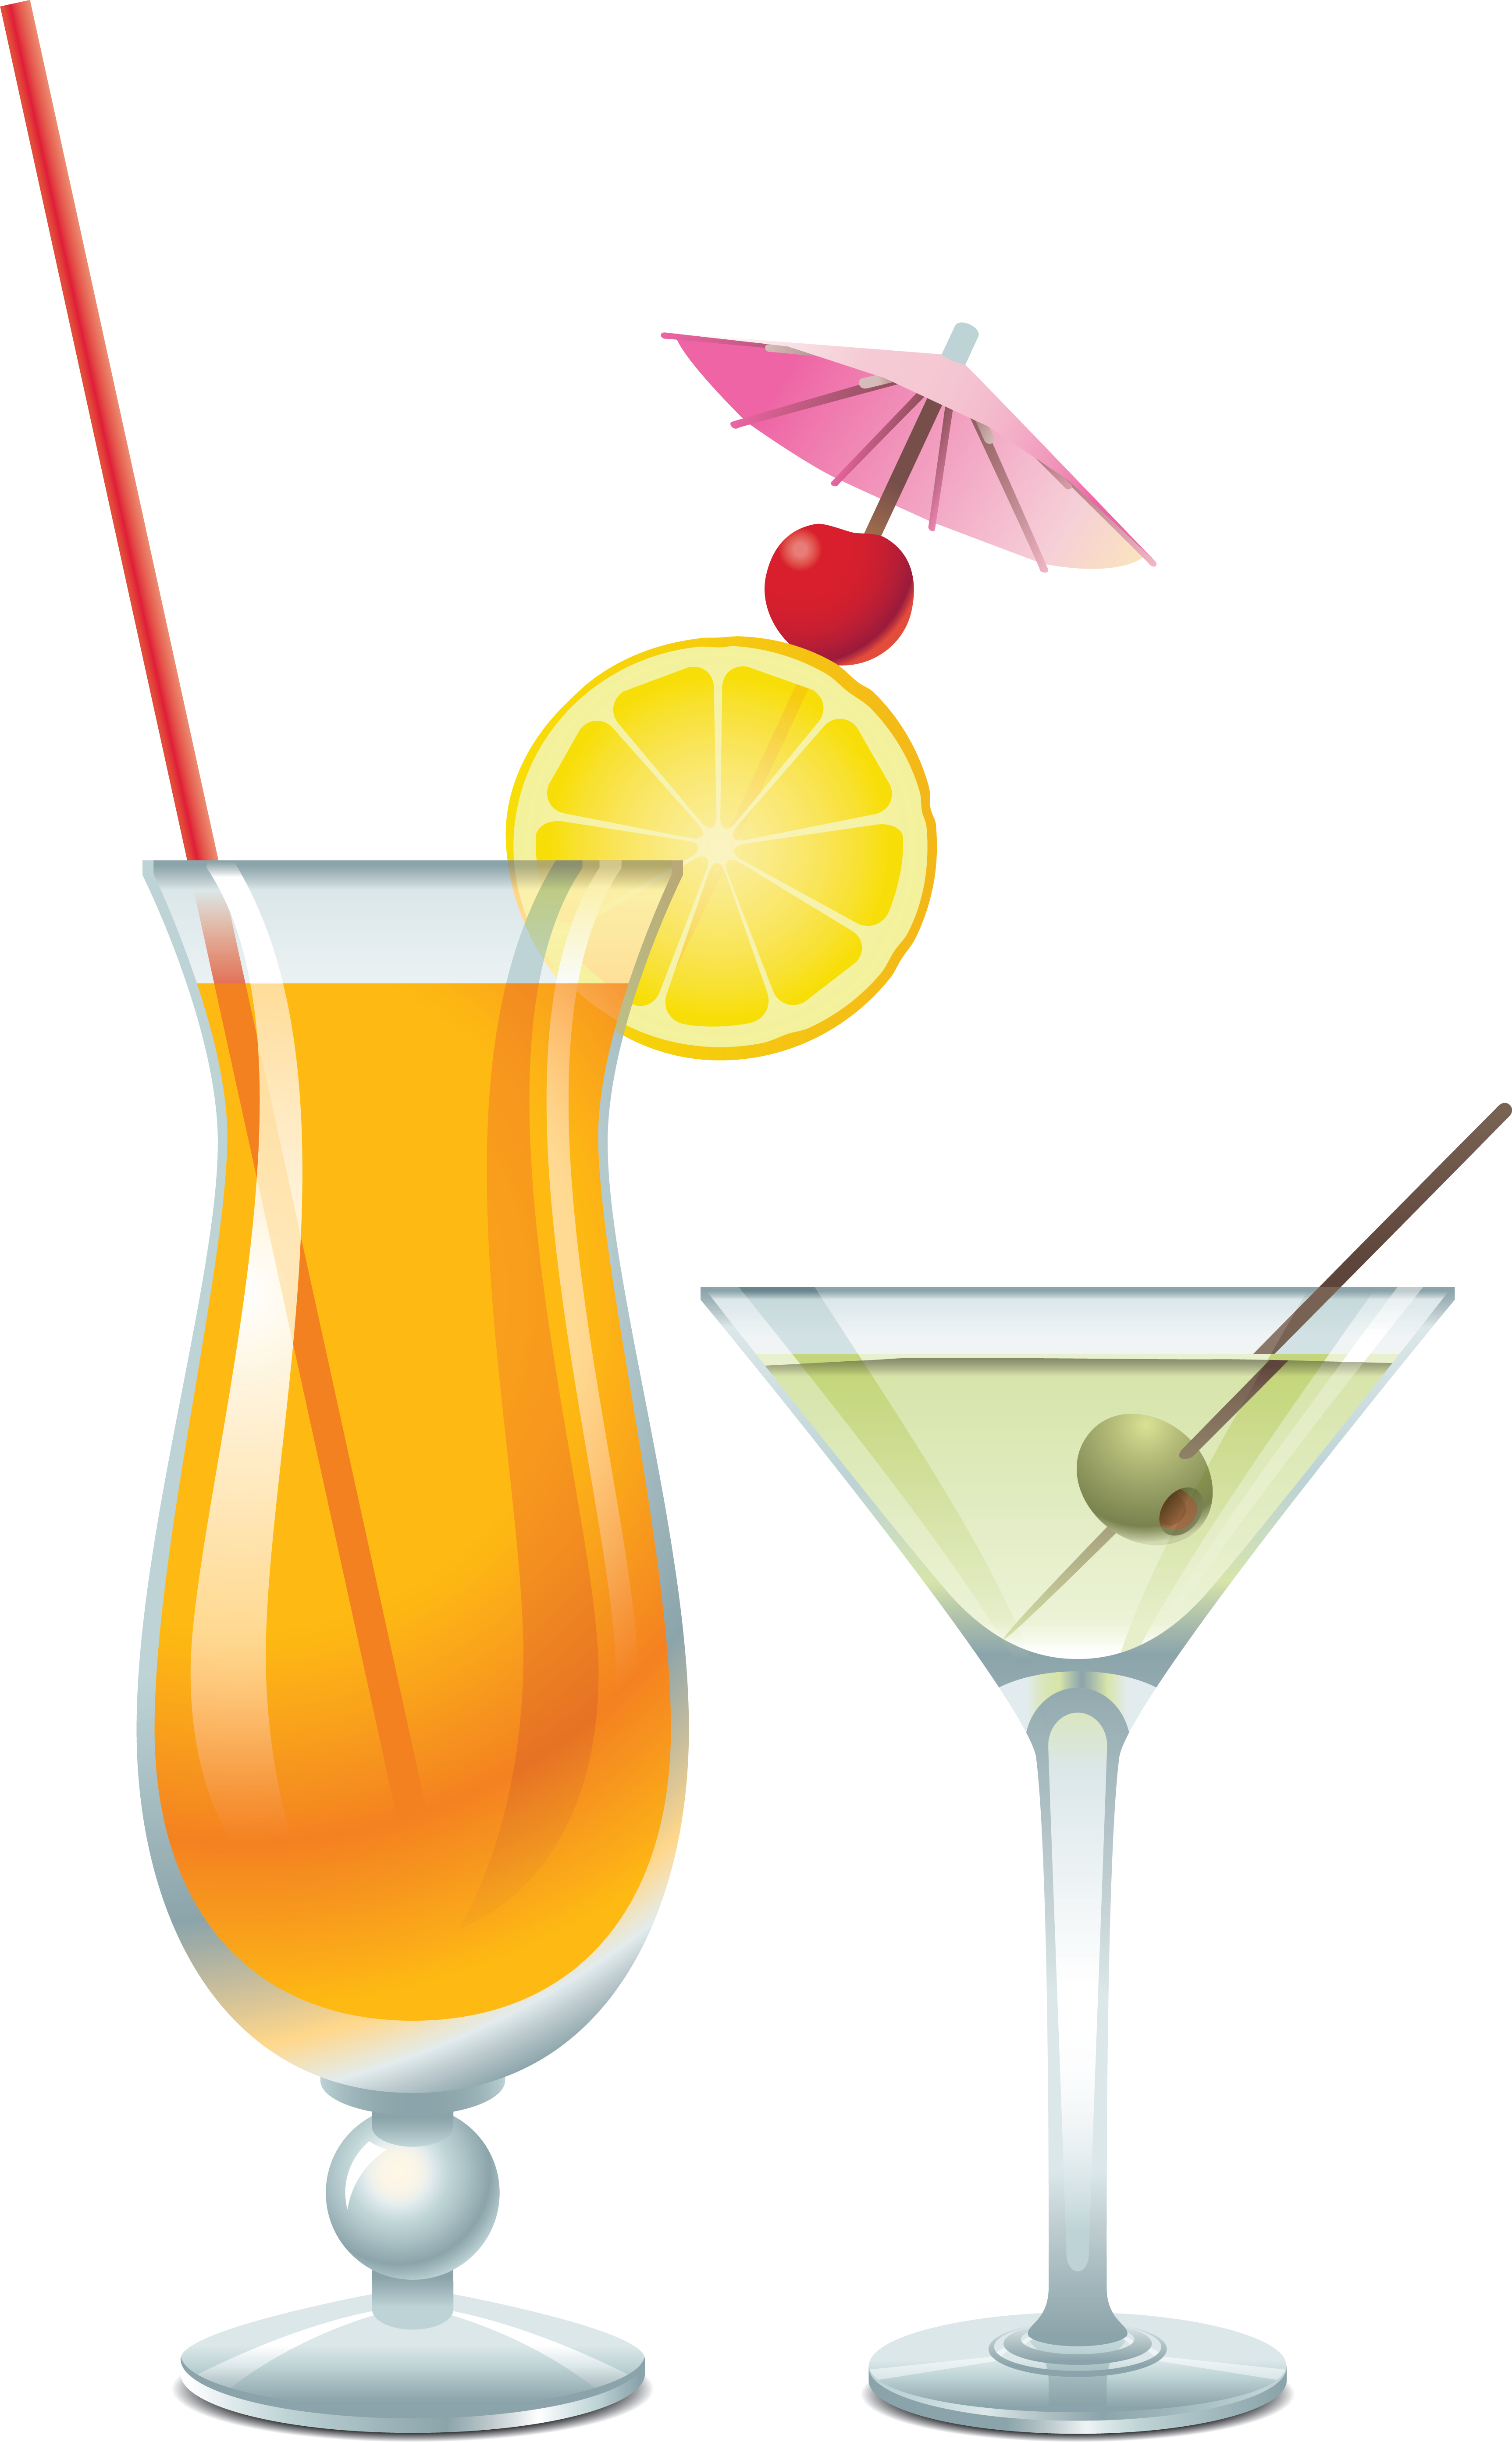 Cocktail Png Image Cocktails Martinis Drinks Mixed Drinks Alcohol